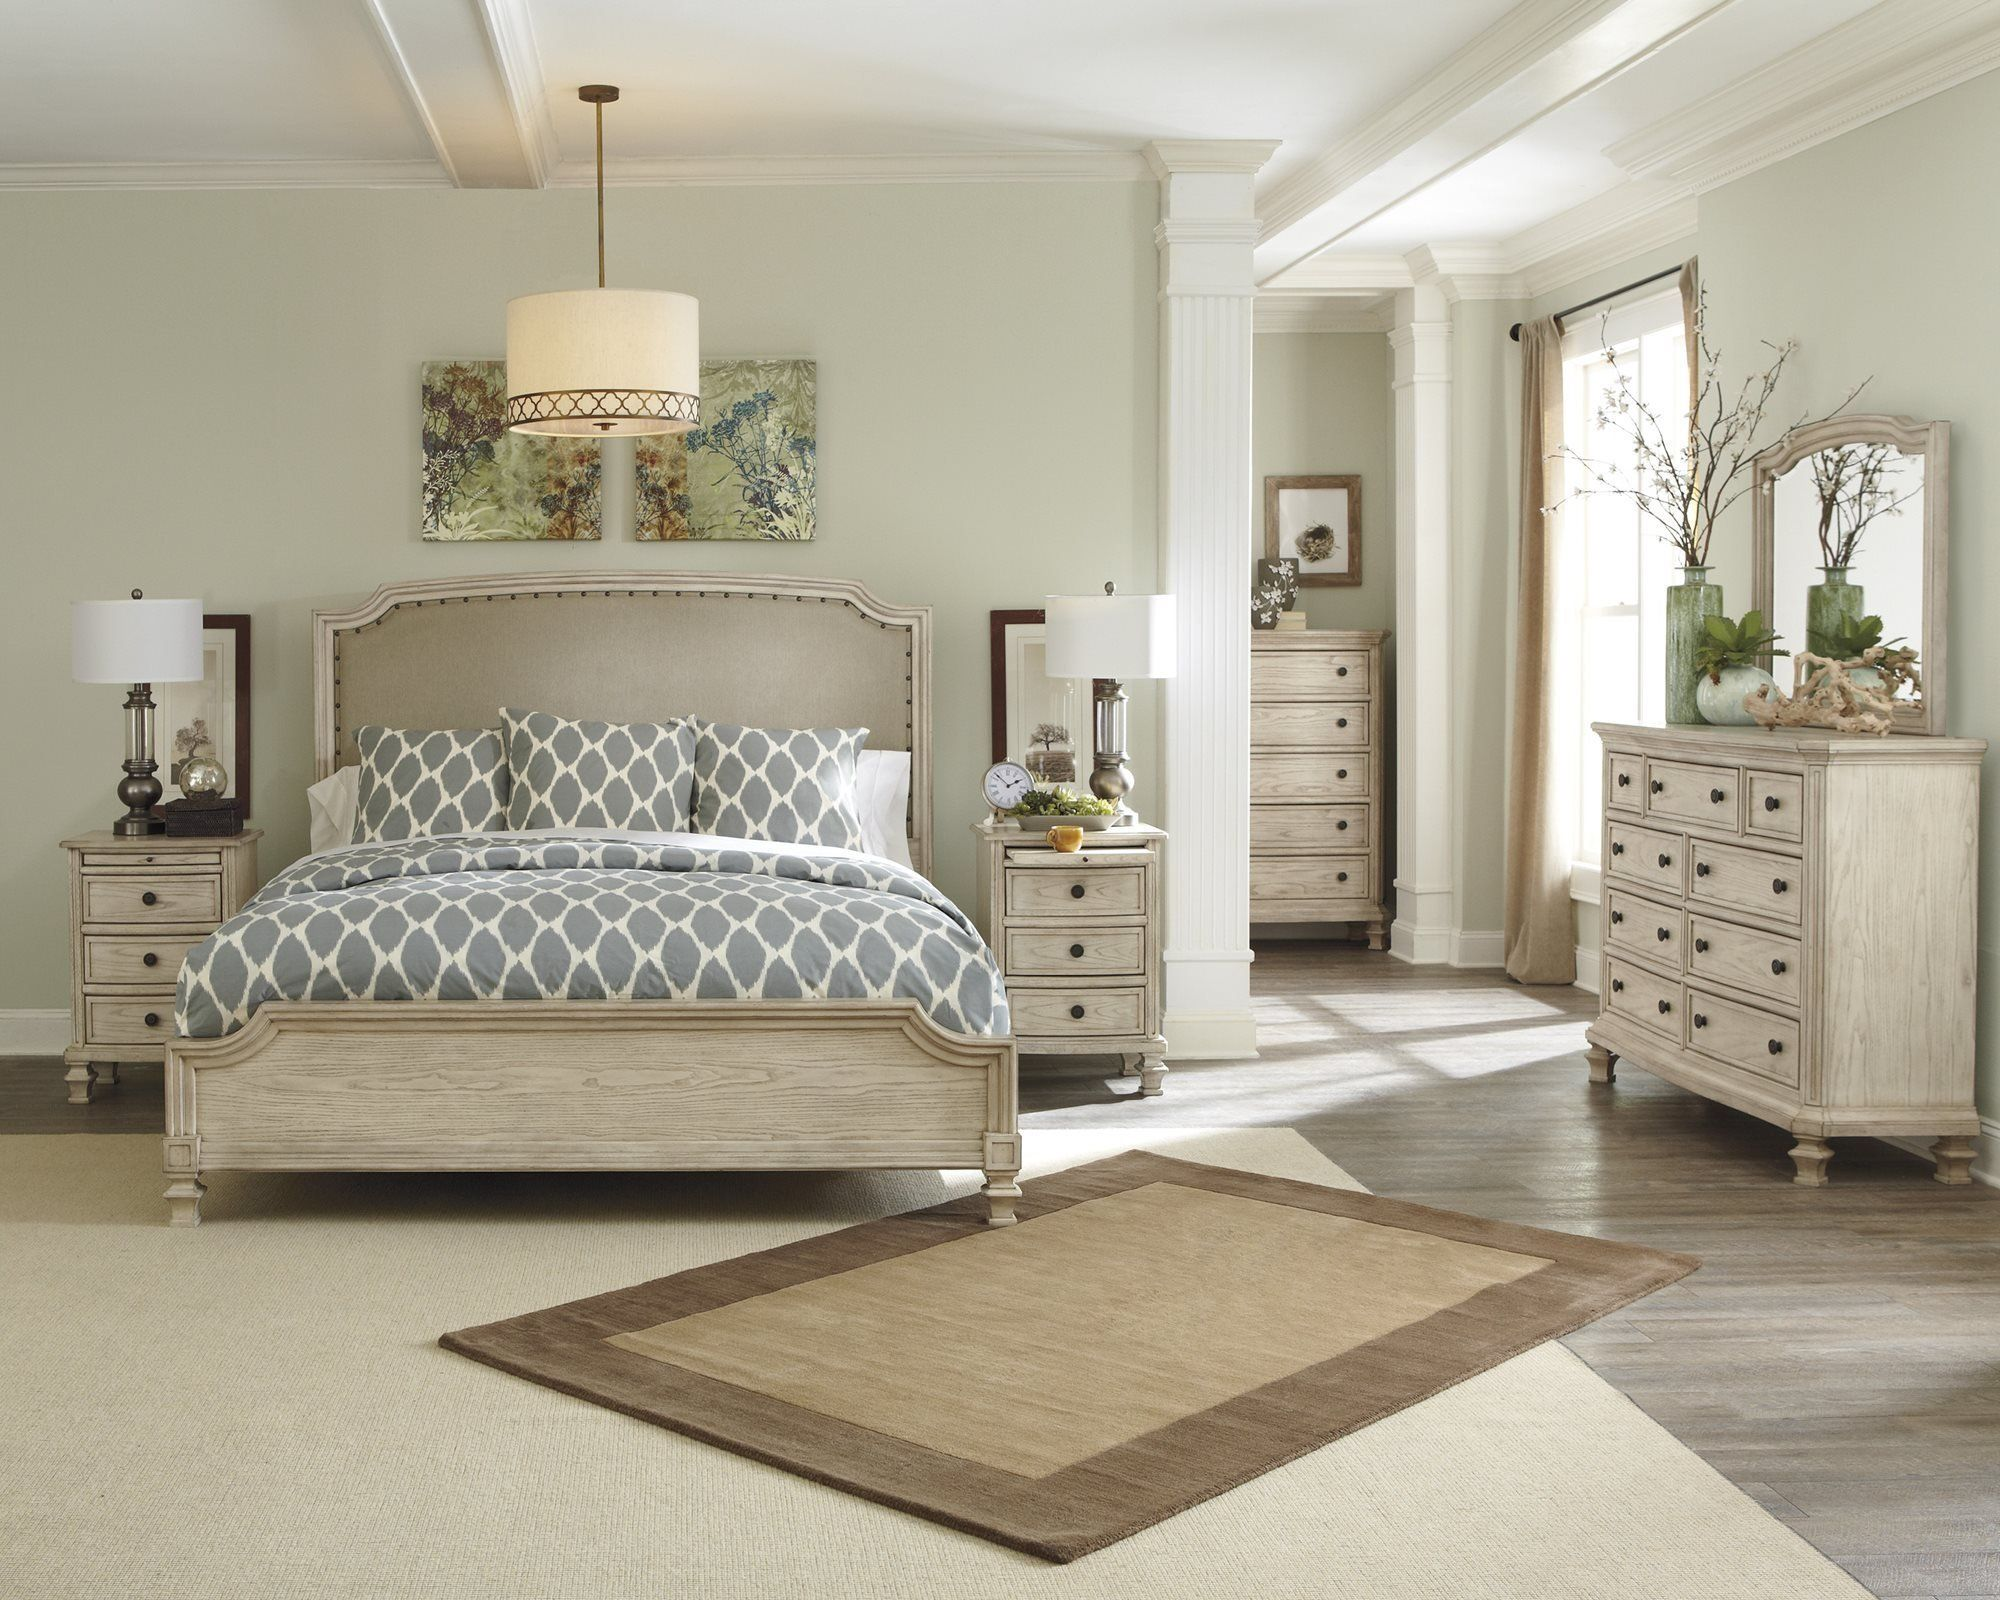 Ashley Demarlos 5pc Bedroom Set Cal King Upholstered Bed One Nightstand Dresser Mirror Ashley Furniture Bedroom Ashley Bedroom Furniture Sets Bedroom Interior